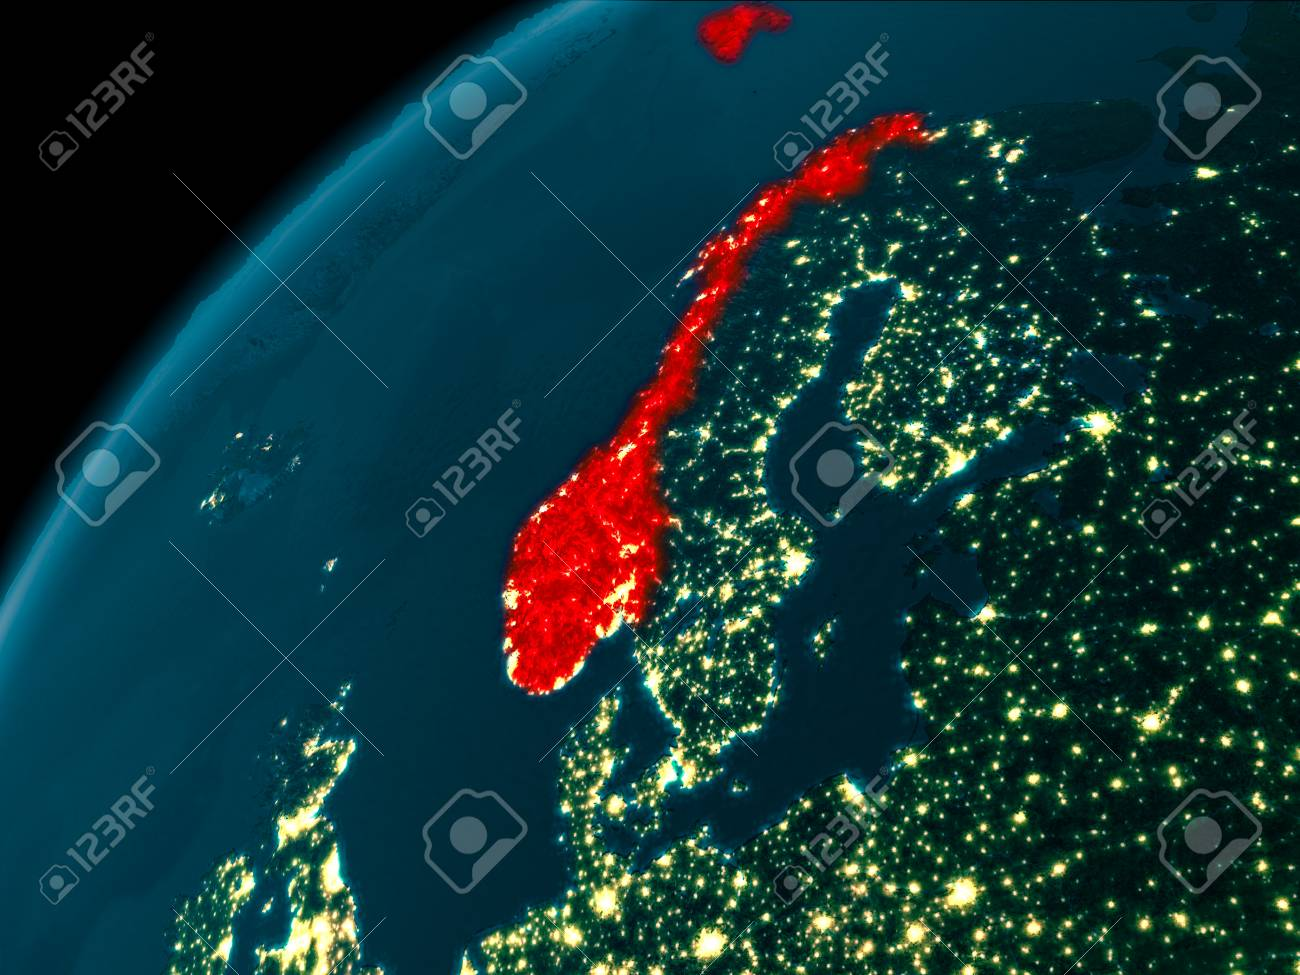 Night map of norway as seen from space on planet earth 3d illustration night map of norway as seen from space on planet earth 3d illustration gumiabroncs Image collections